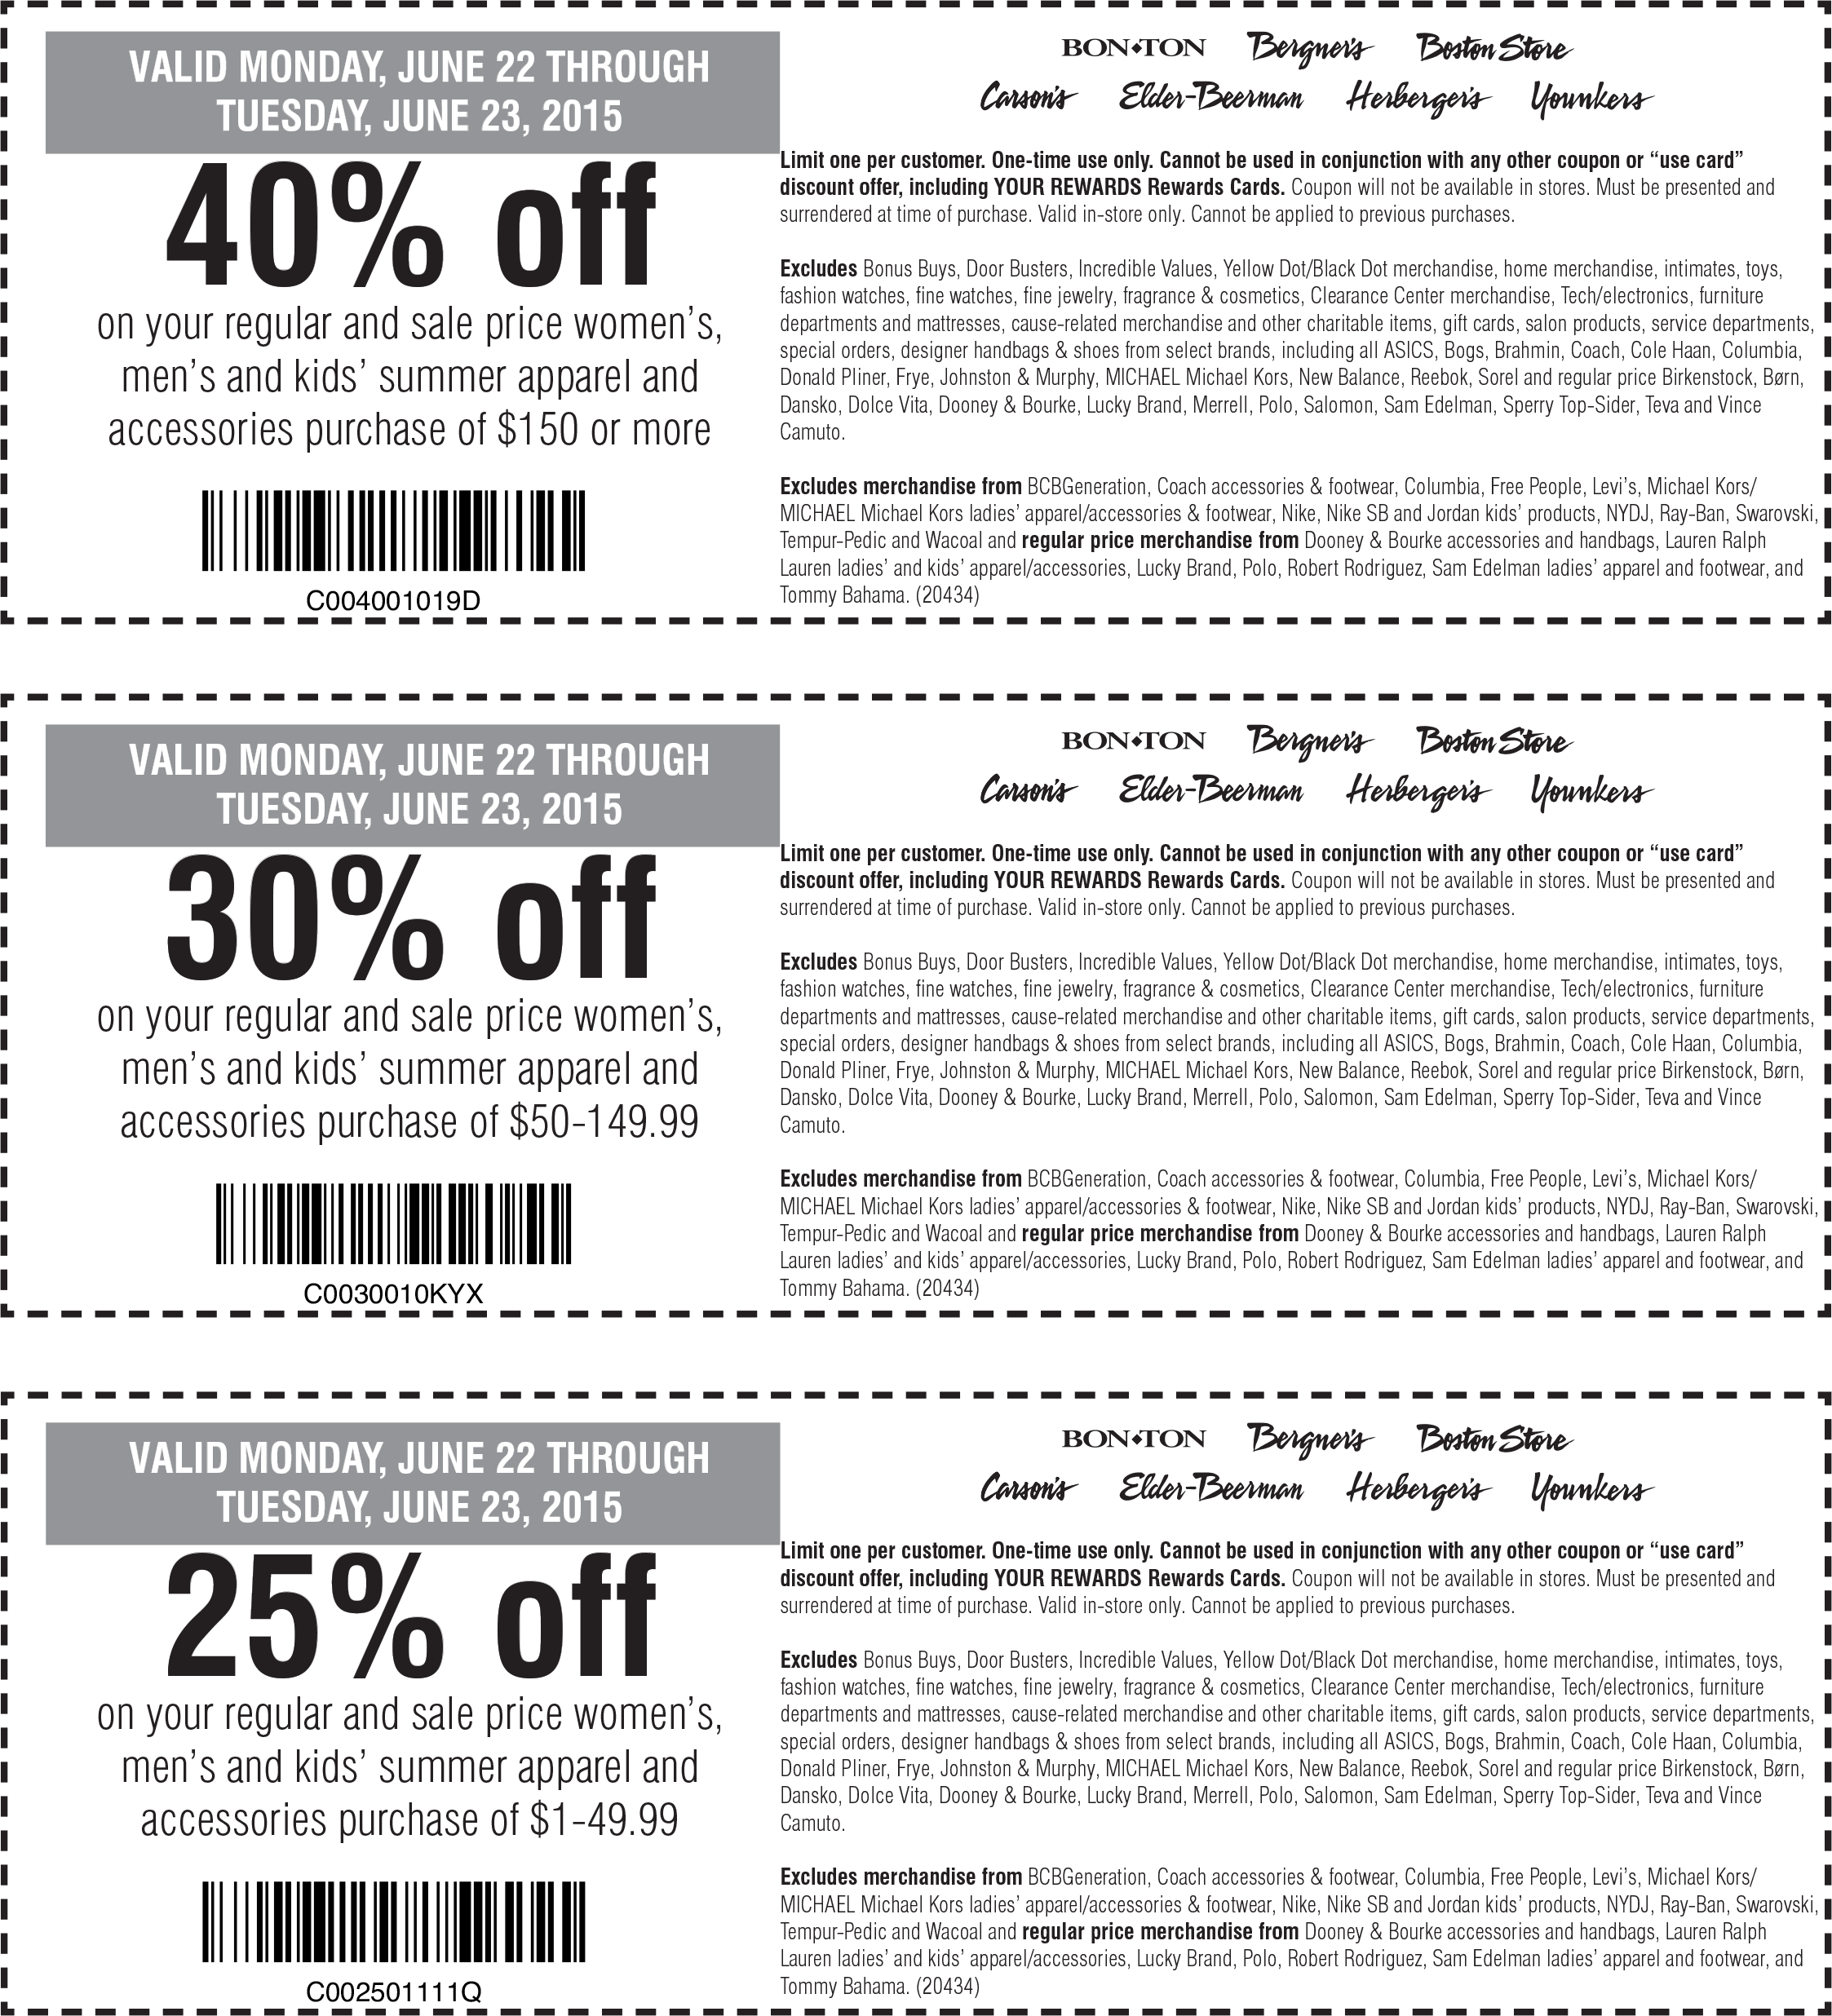 Carsons Coupon March 2017 25-40% off summer gear at Carsons, Bon Ton, Bergners, Boston Store, Elder-Beerman, Herbergers & Younkers stores